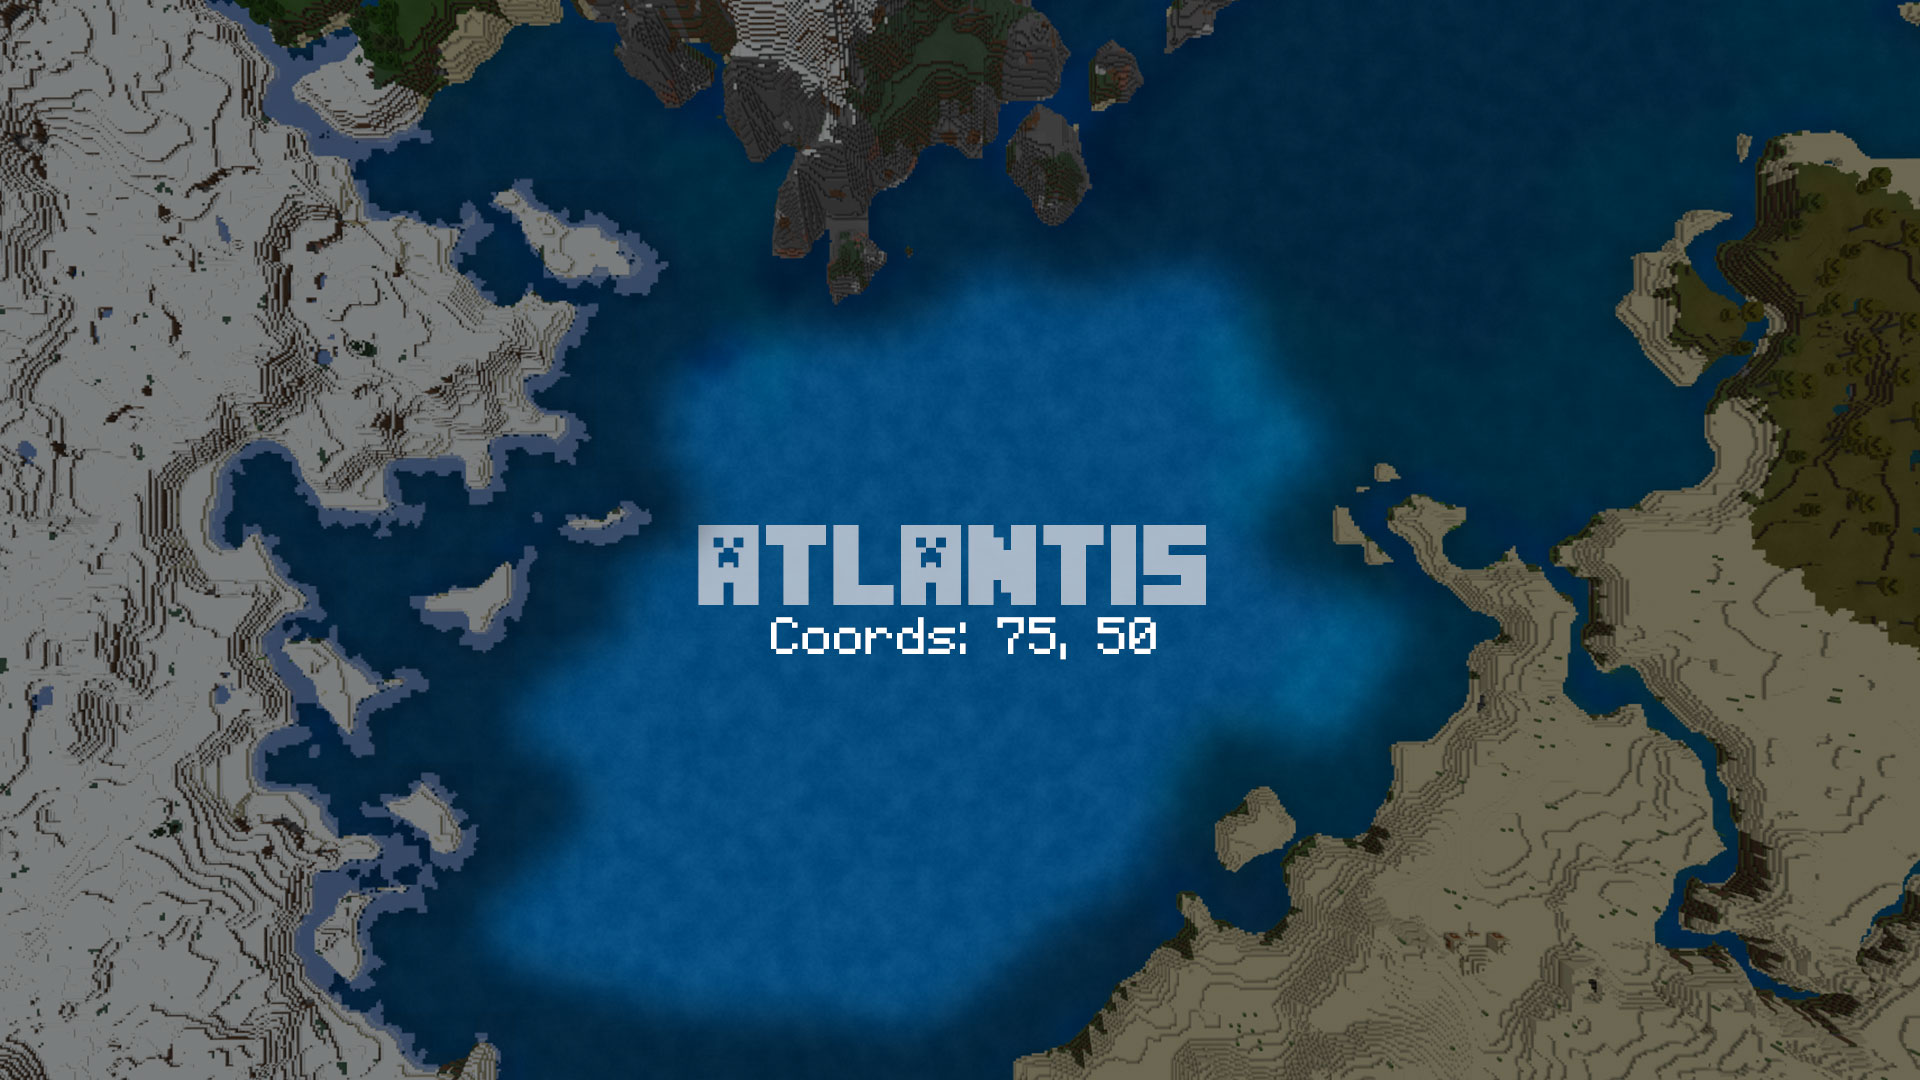 Season 1 Atlantis